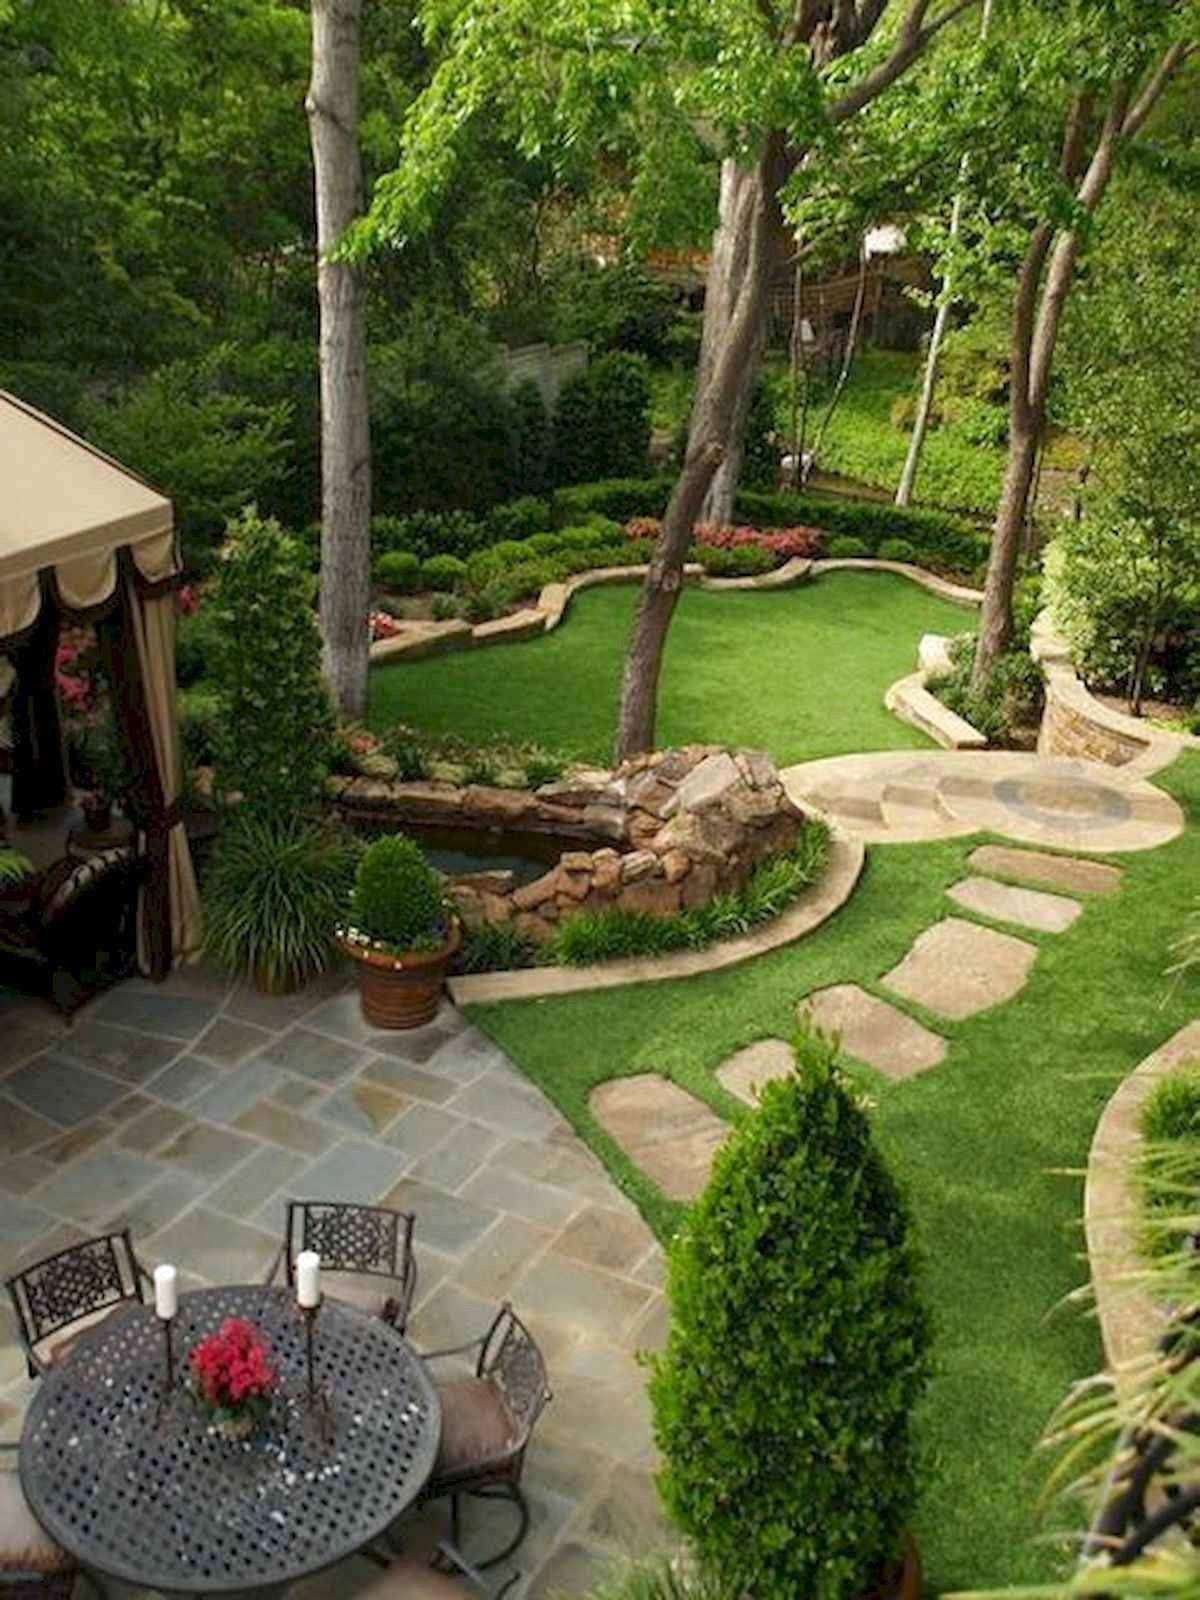 Photo of 60 Cool Garden Path And Walkway Ideas Design Ideas And Remodel #GardenPathIdeas #GardenDesign